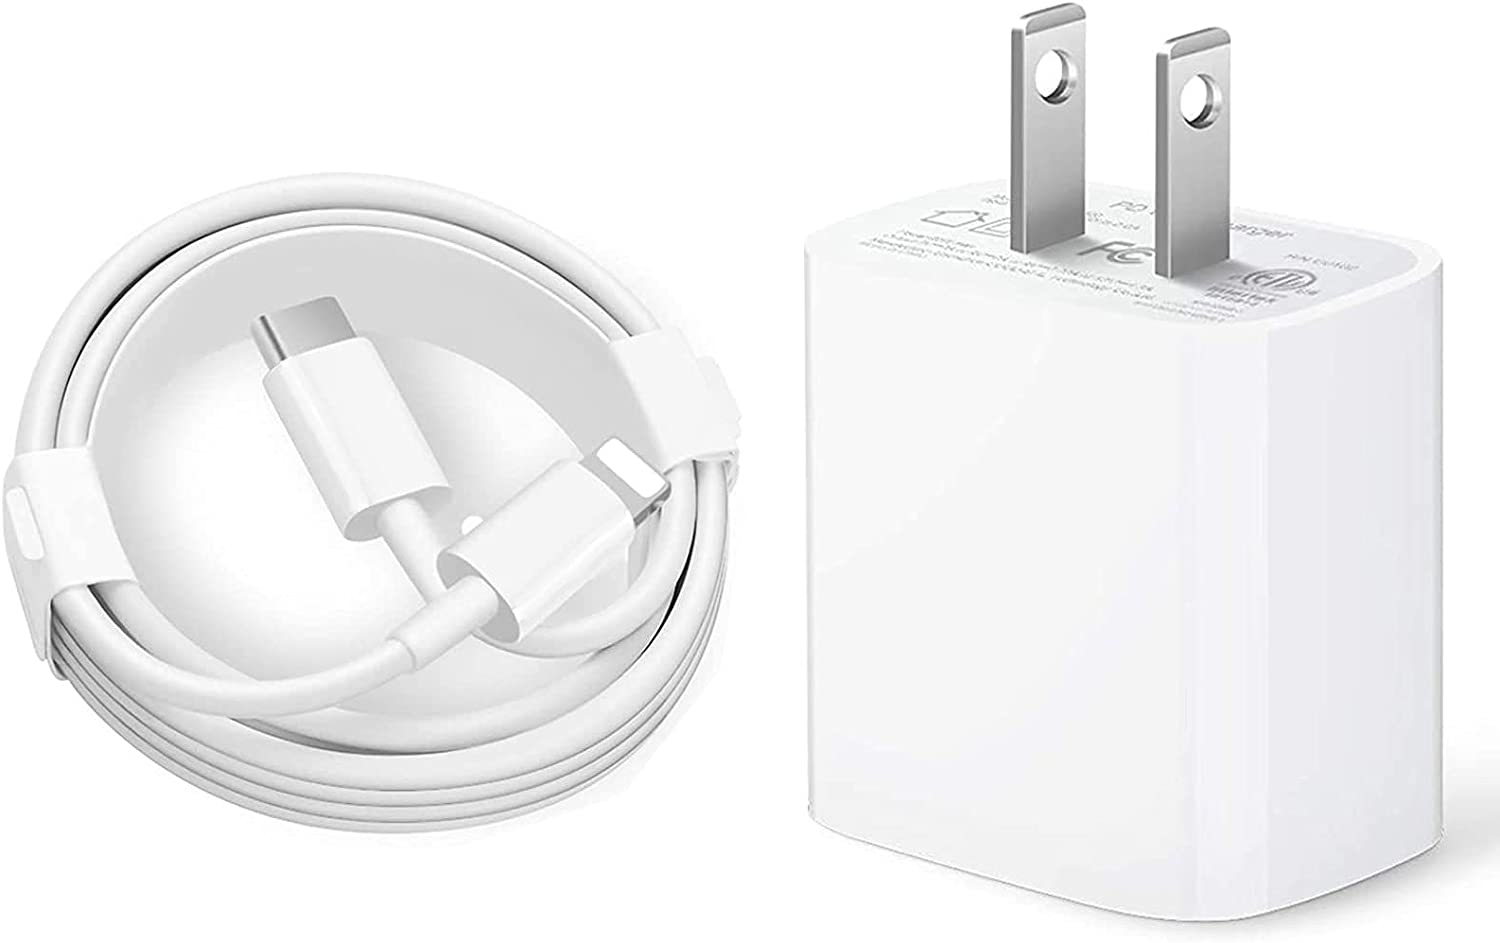 iPhone Fast Charger, 20W PD Type C Power Adapter Wall Charger [Apple MFi Certified] Travel Plug with 3FT USB C to Lightning Quick Charge Sync Cable Compatible with iPhone 12/11/XS/XR/X 8/SE 2020, iPad